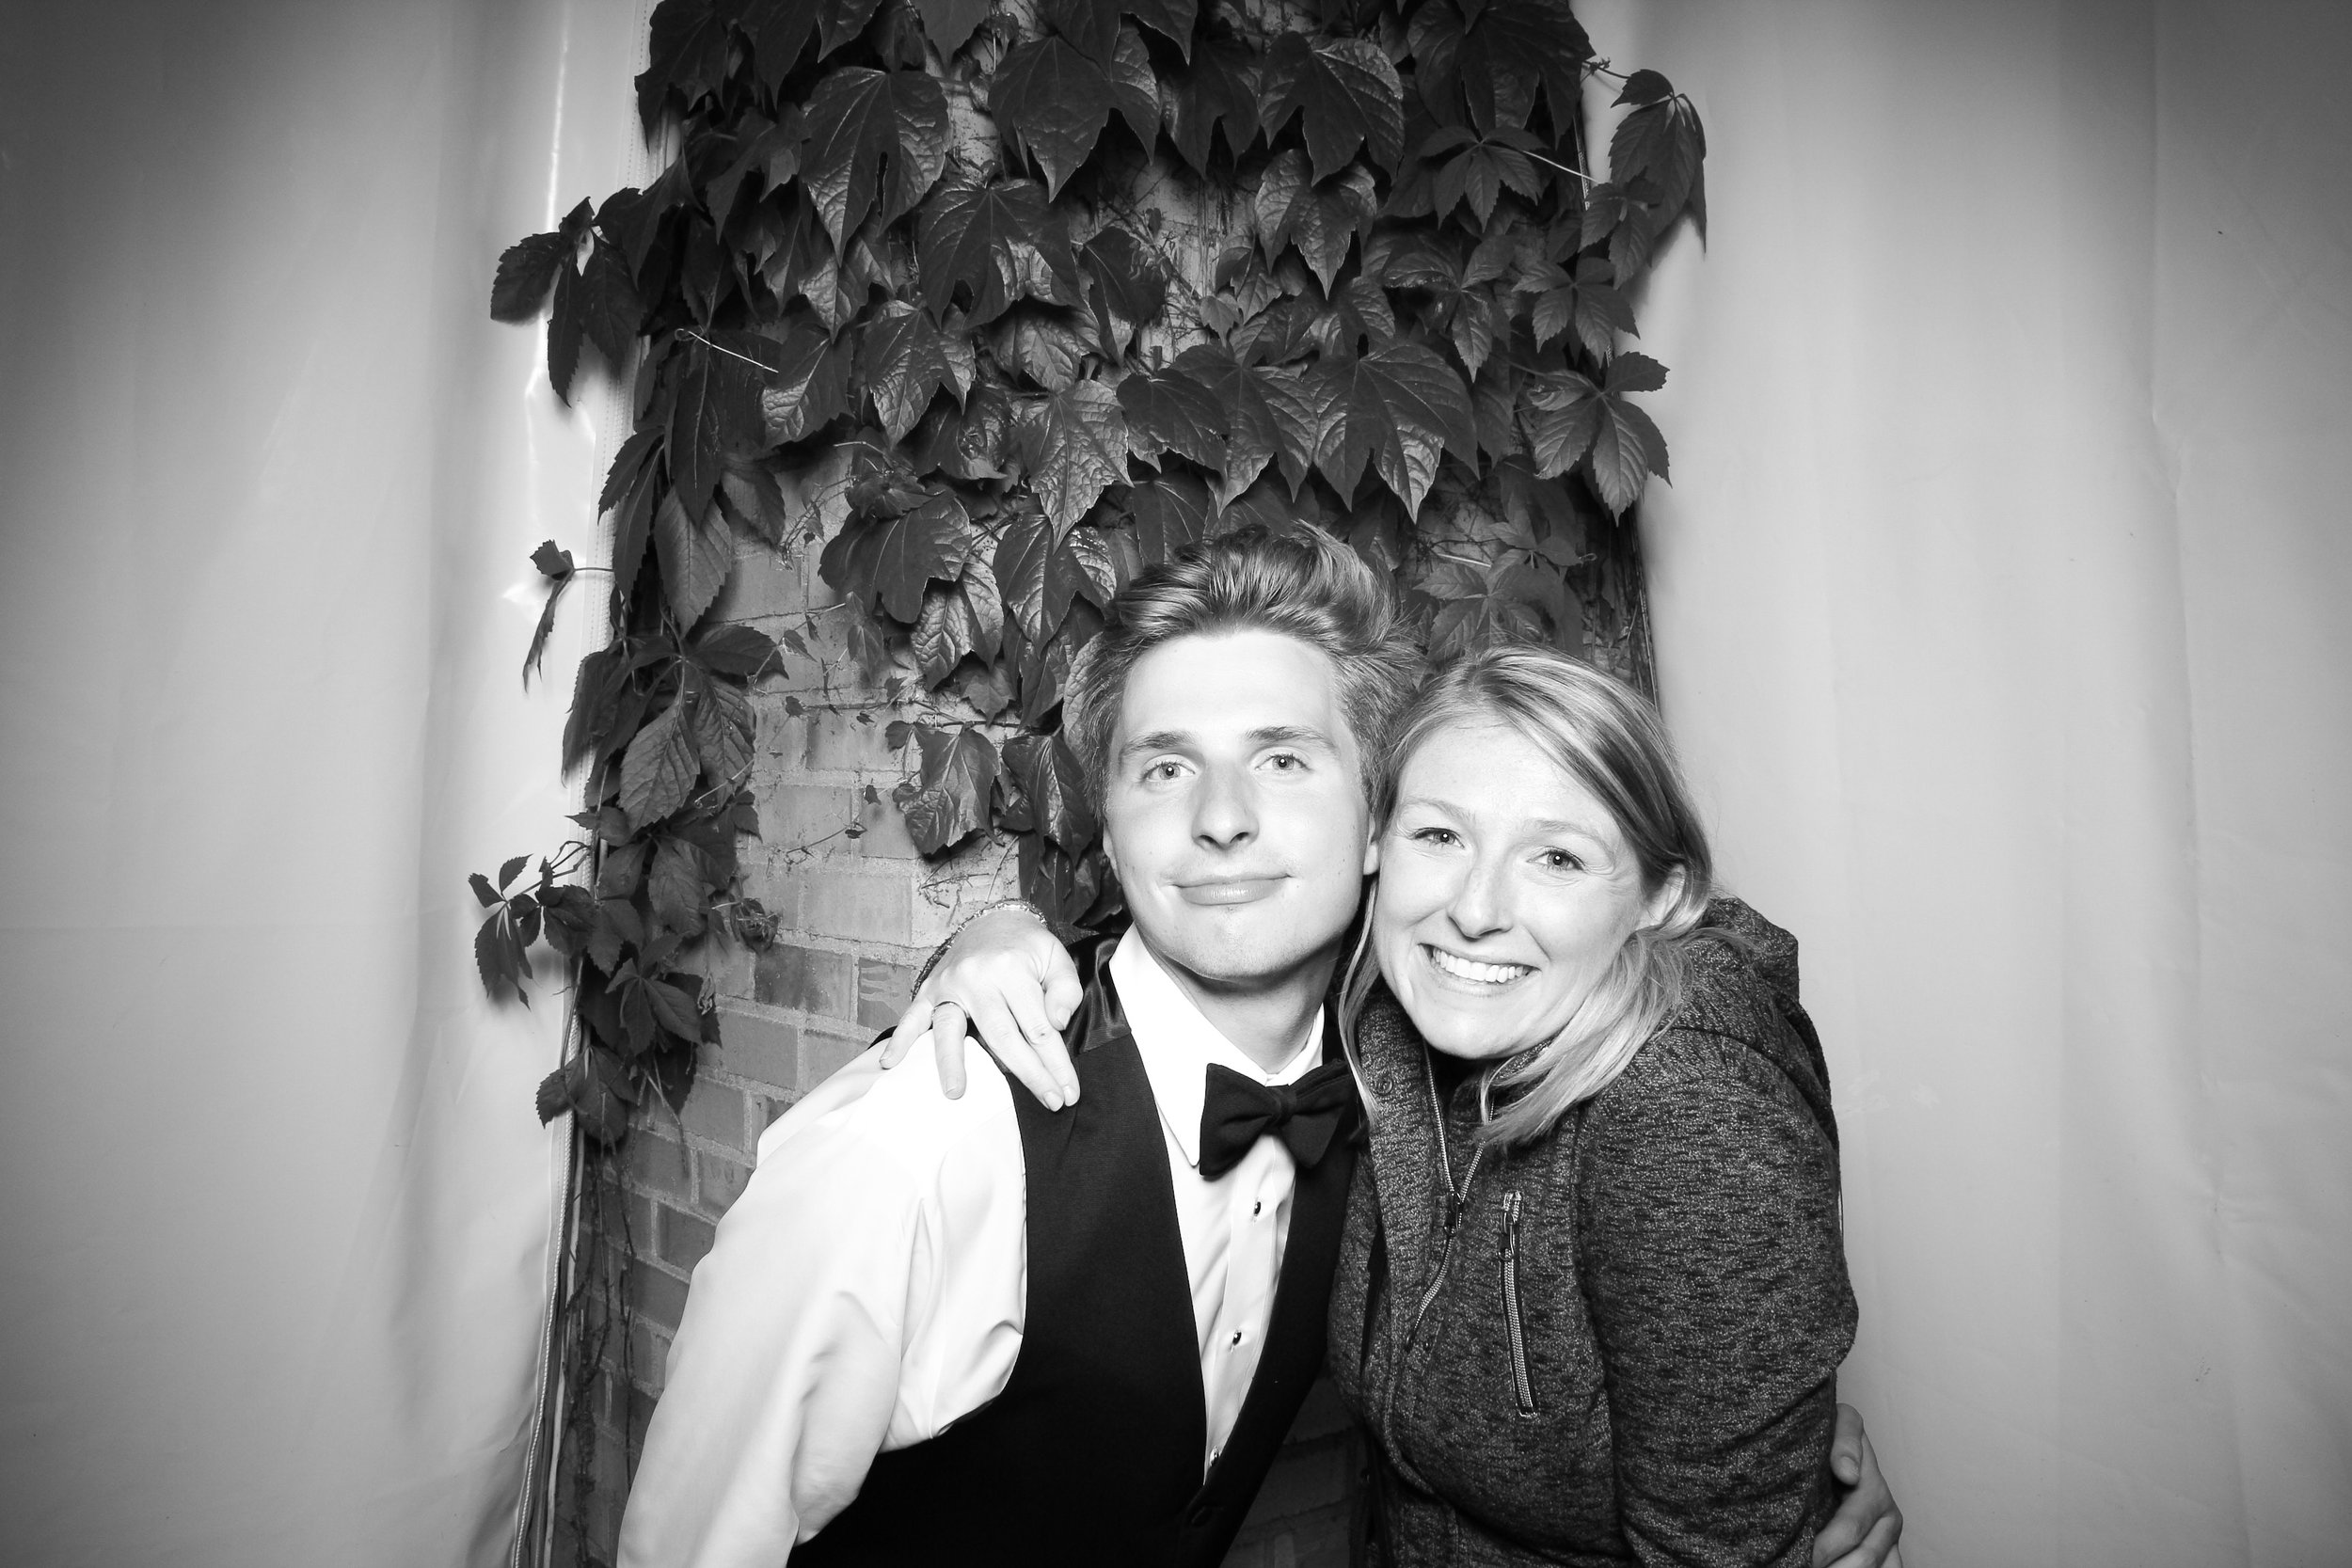 Chicago_Vintage_Wedding_Photobooth_Botanic_Garden_23.jpg